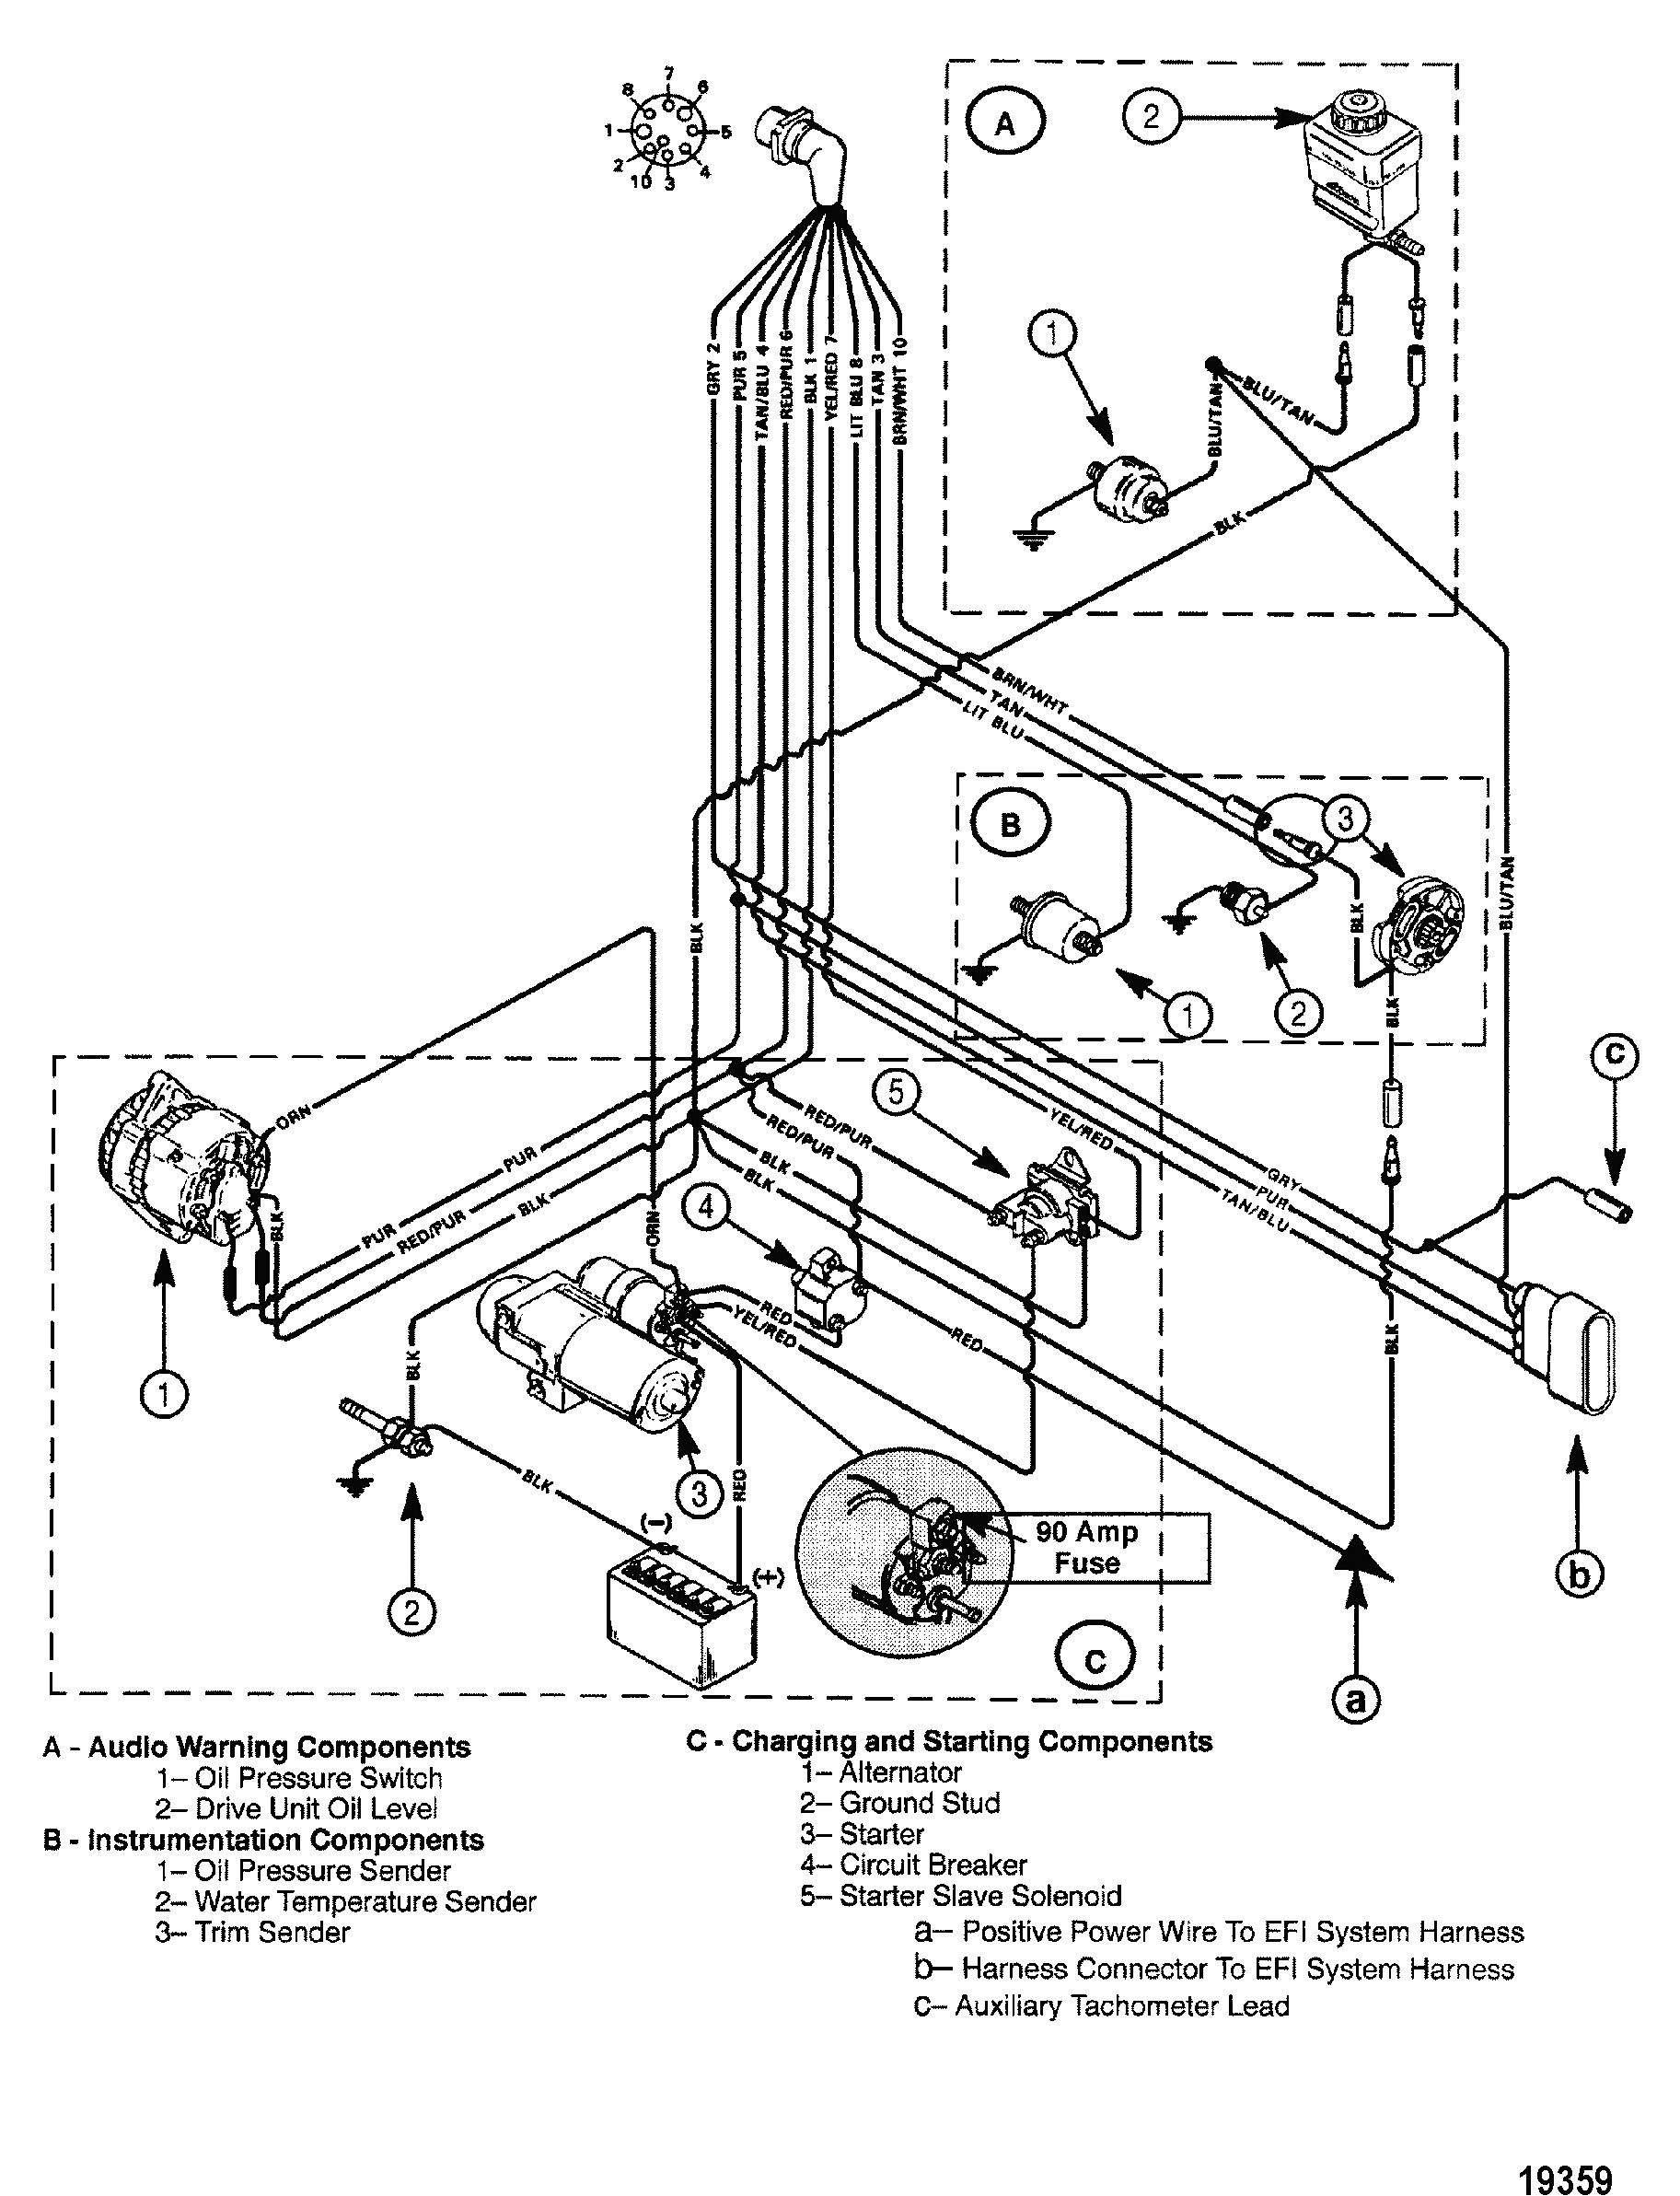 Ignition Wiring Diagram 1999 Mercruiser 4 3 Vortec V6